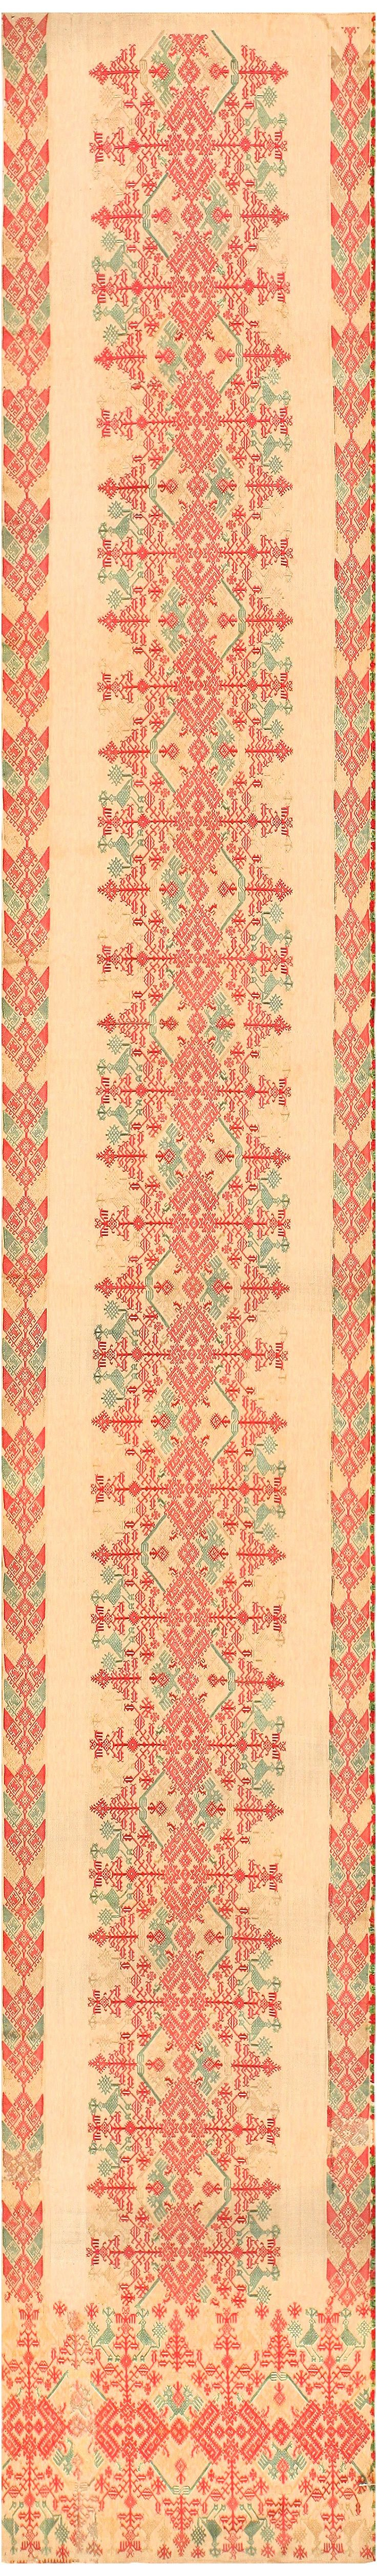 Antique Greek Embroidery 41486 Main Image - By Nazmiyal